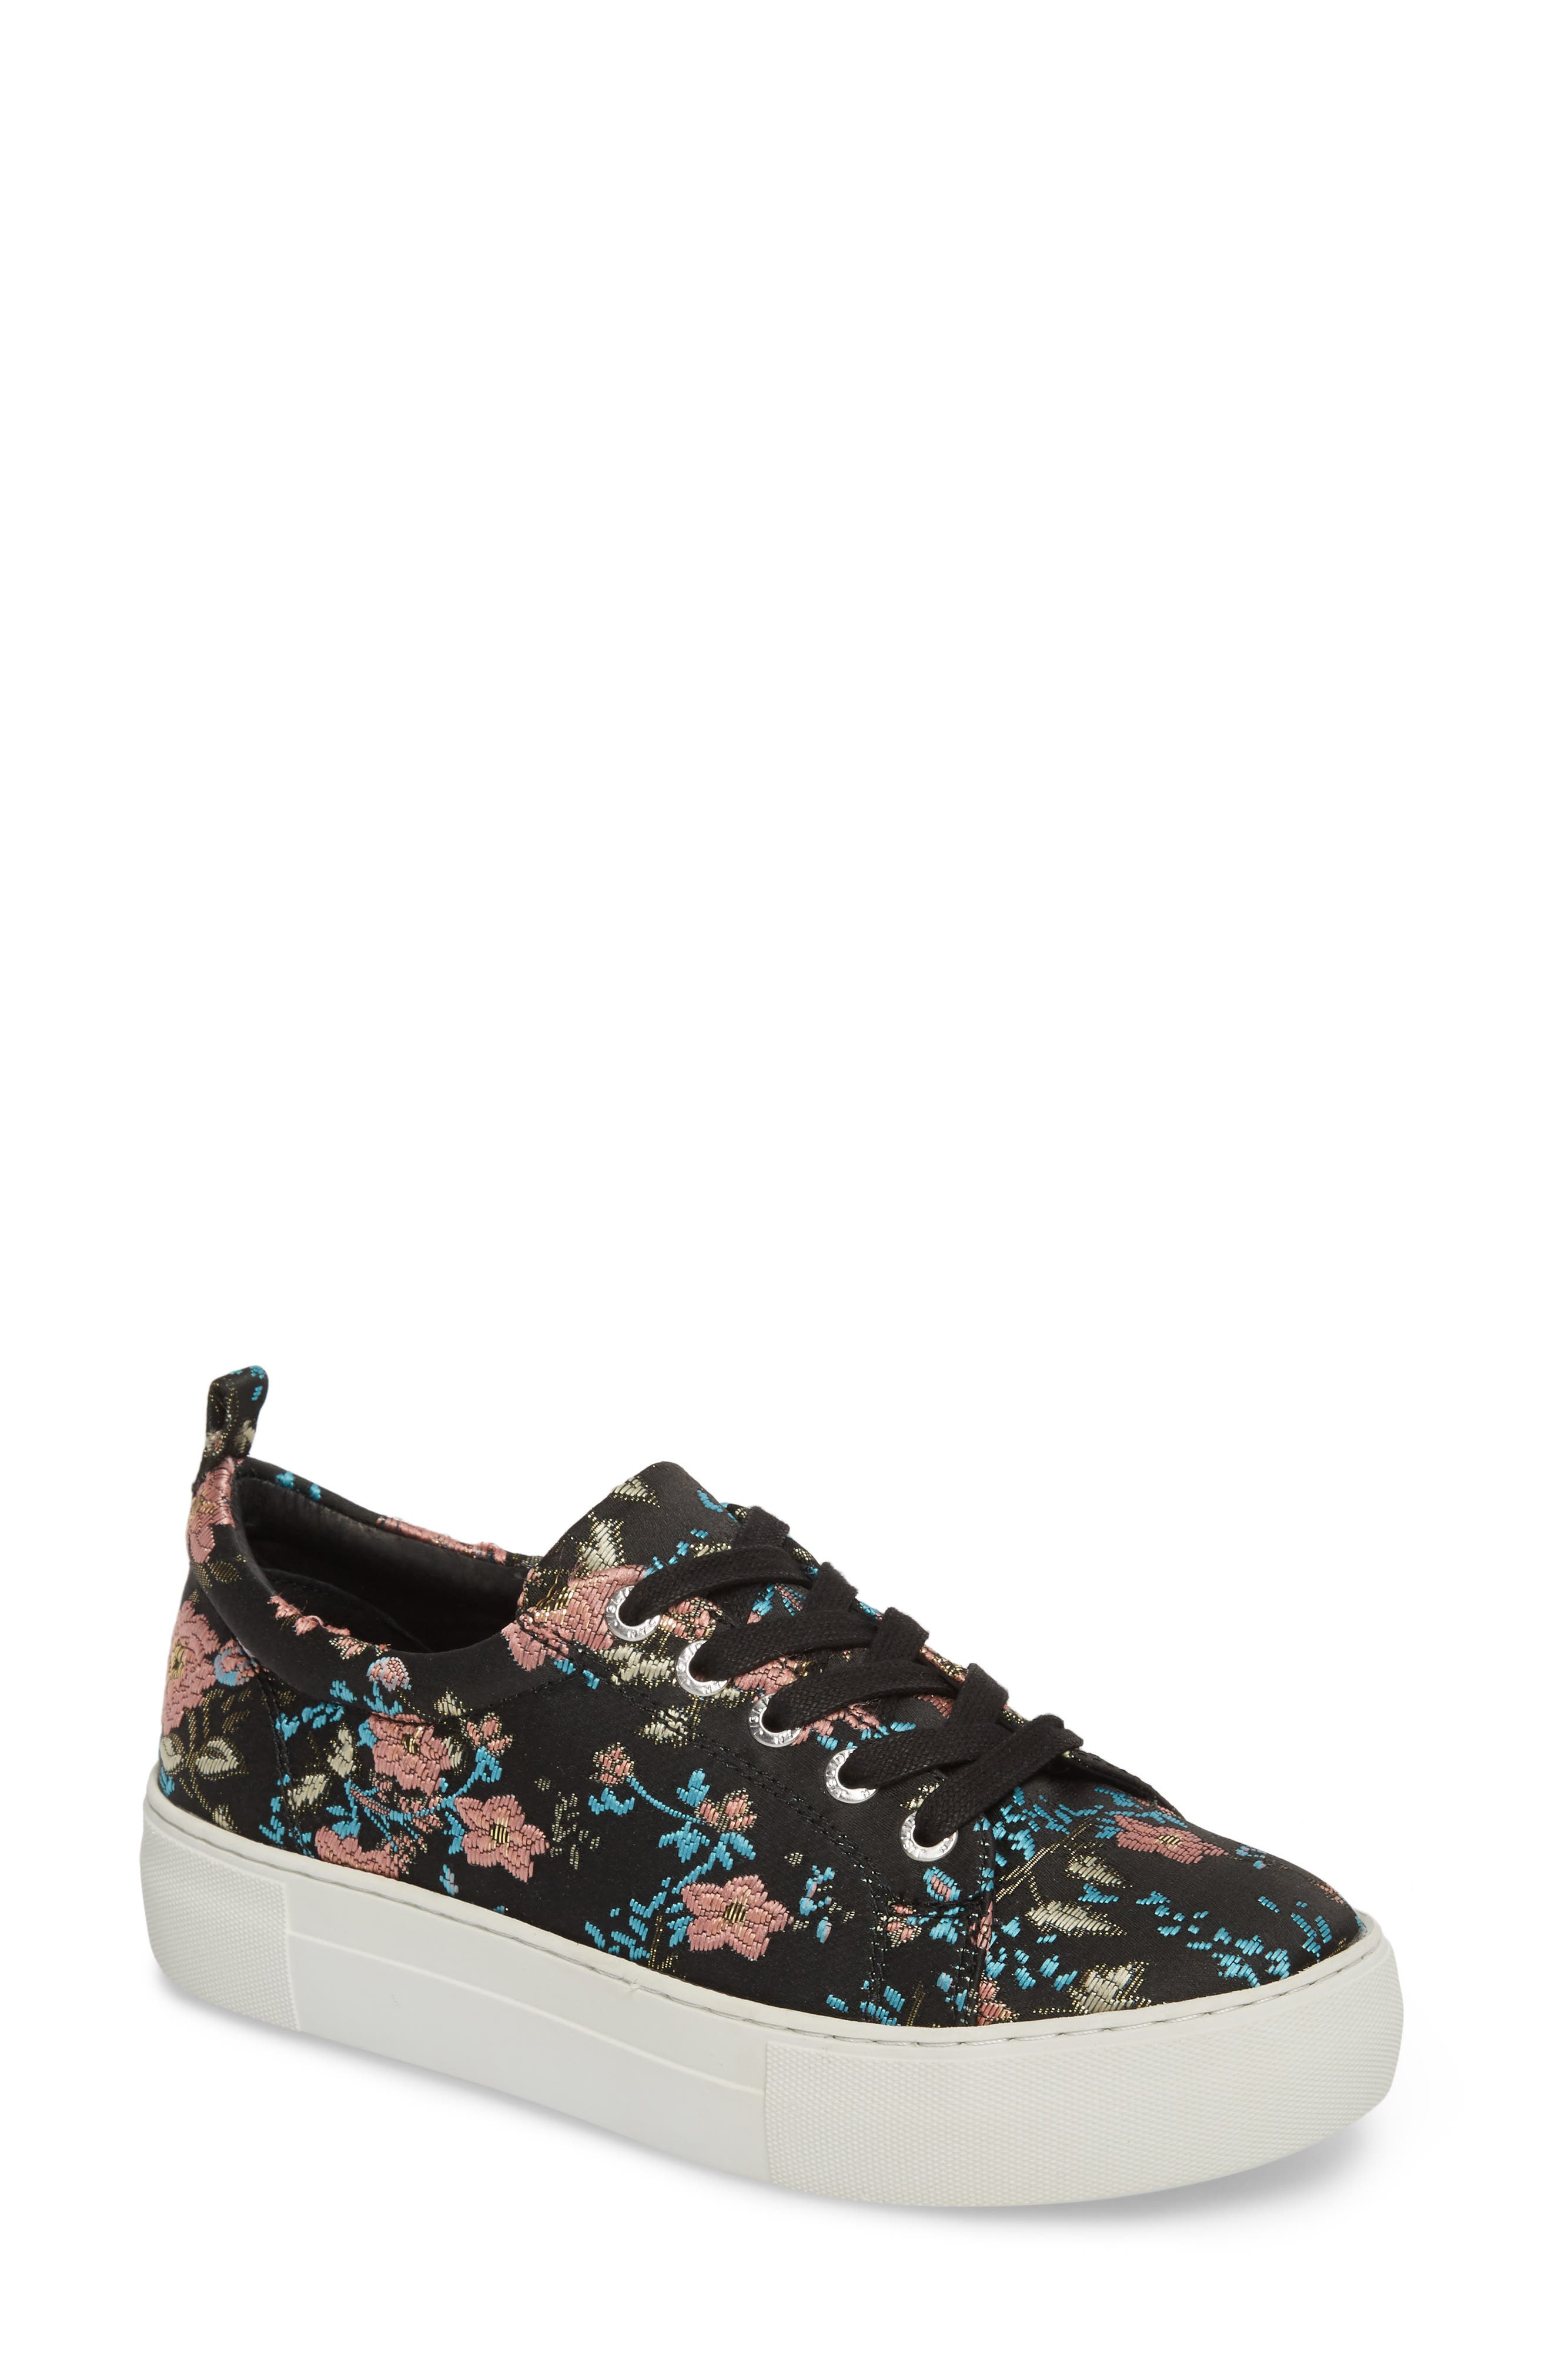 Assure Embroidered Platform Sneaker,                         Main,                         color, 016